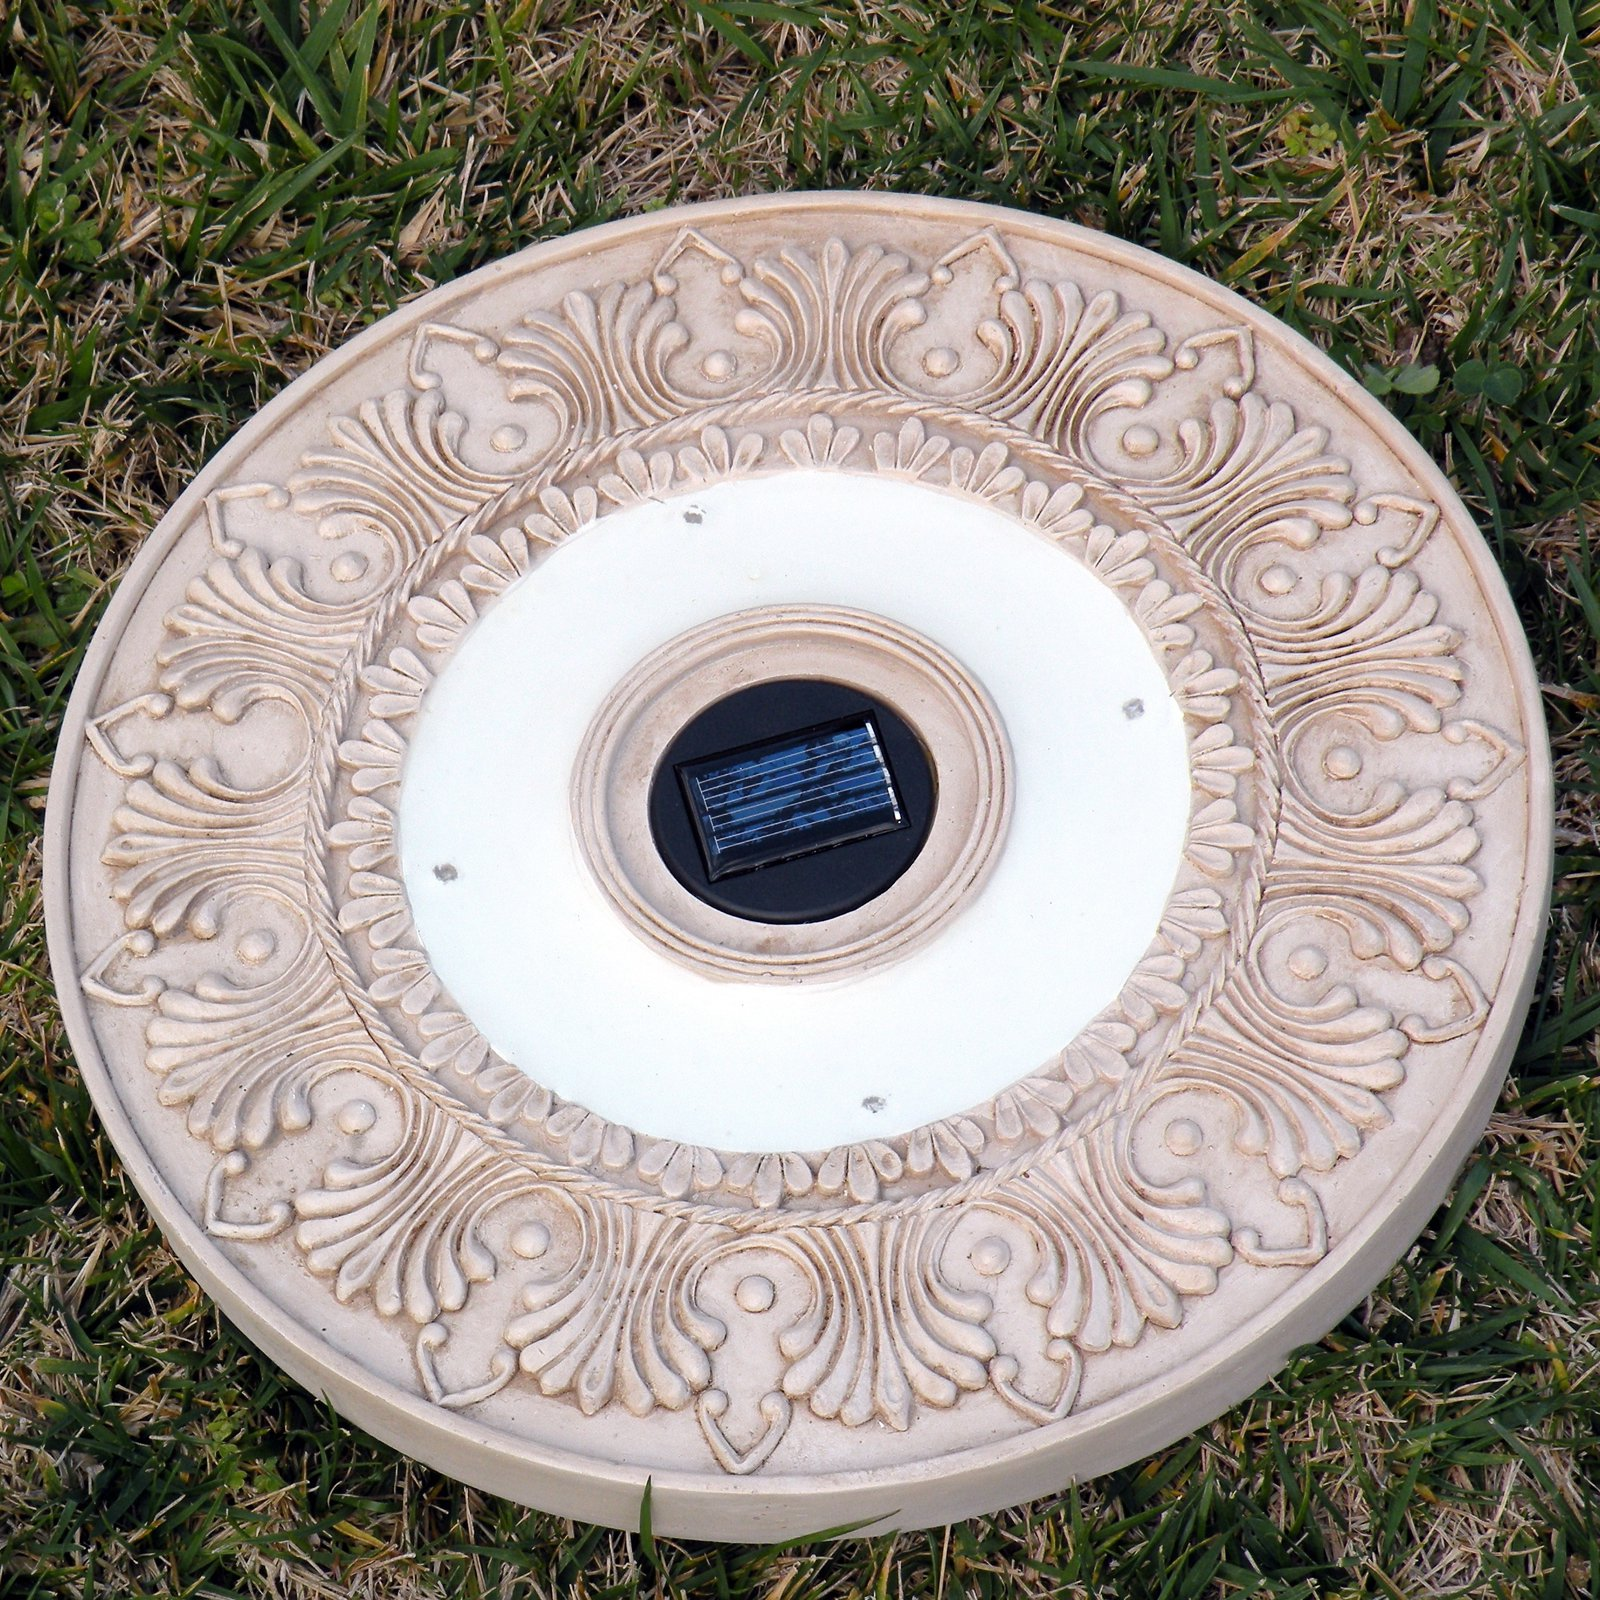 Homebrite Solar Power Round White Wash Stepping Stones - Set of 3